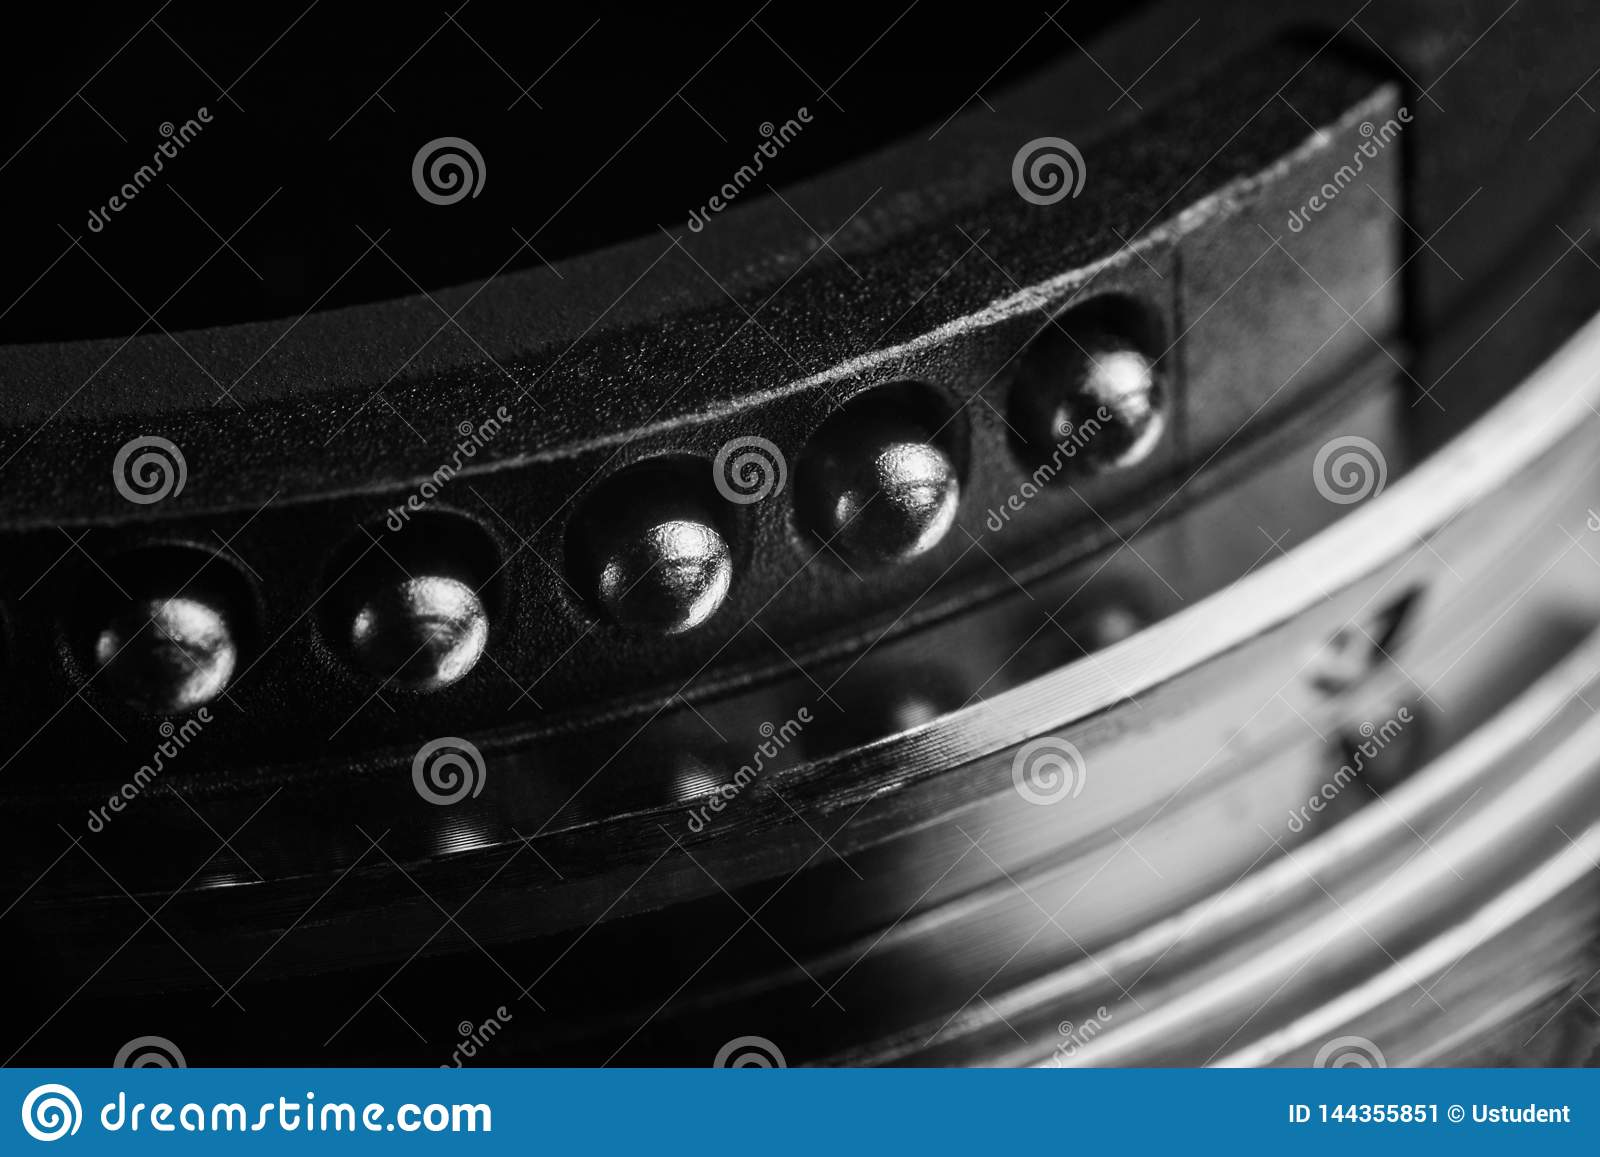 The contacts of the lens mount